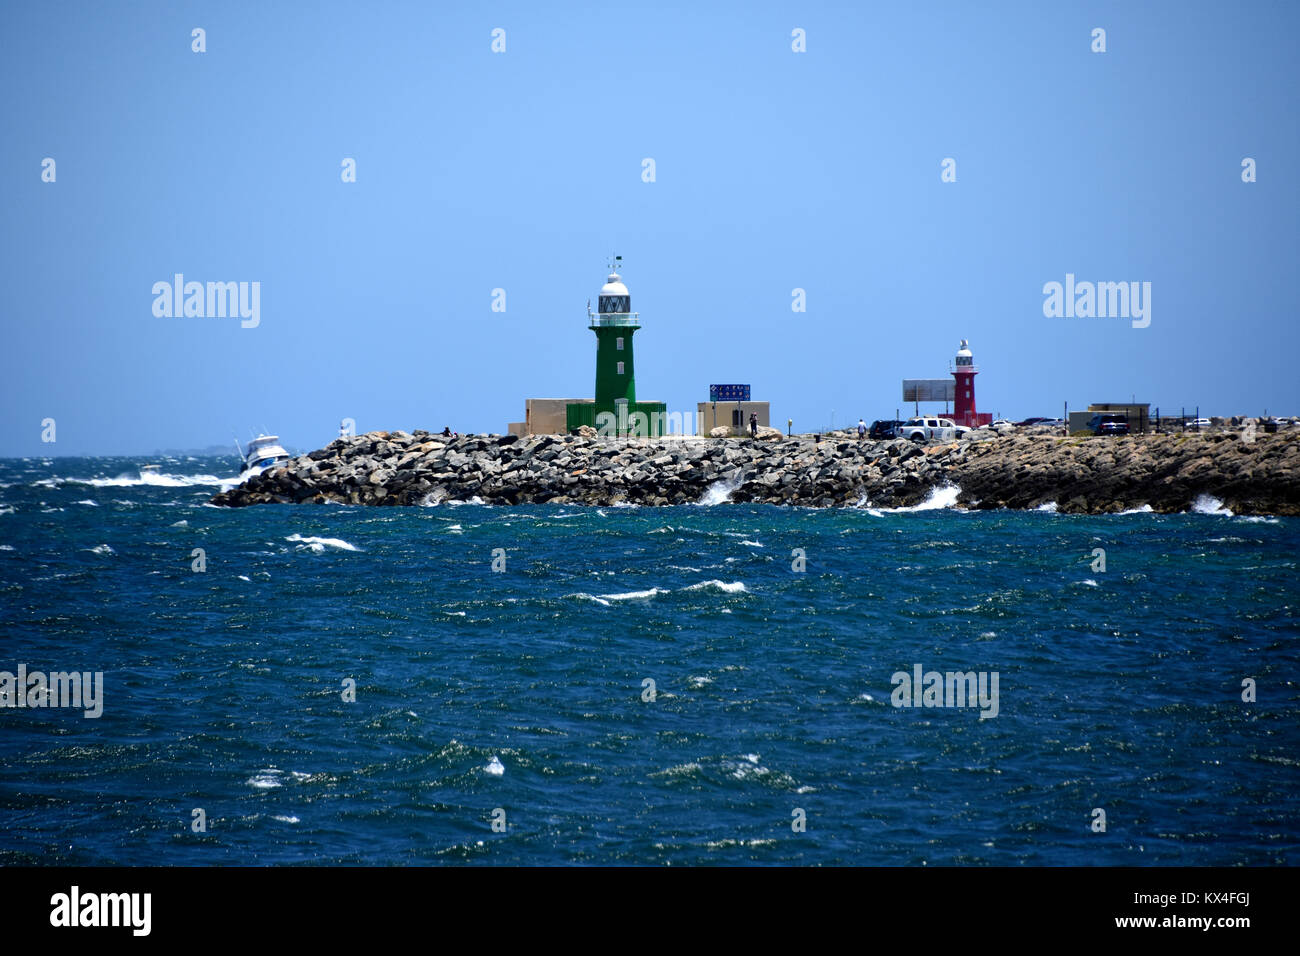 Starboard green and Port left lighthouse on a breakwater at the entrance to Freemantle harbour - Stock Image